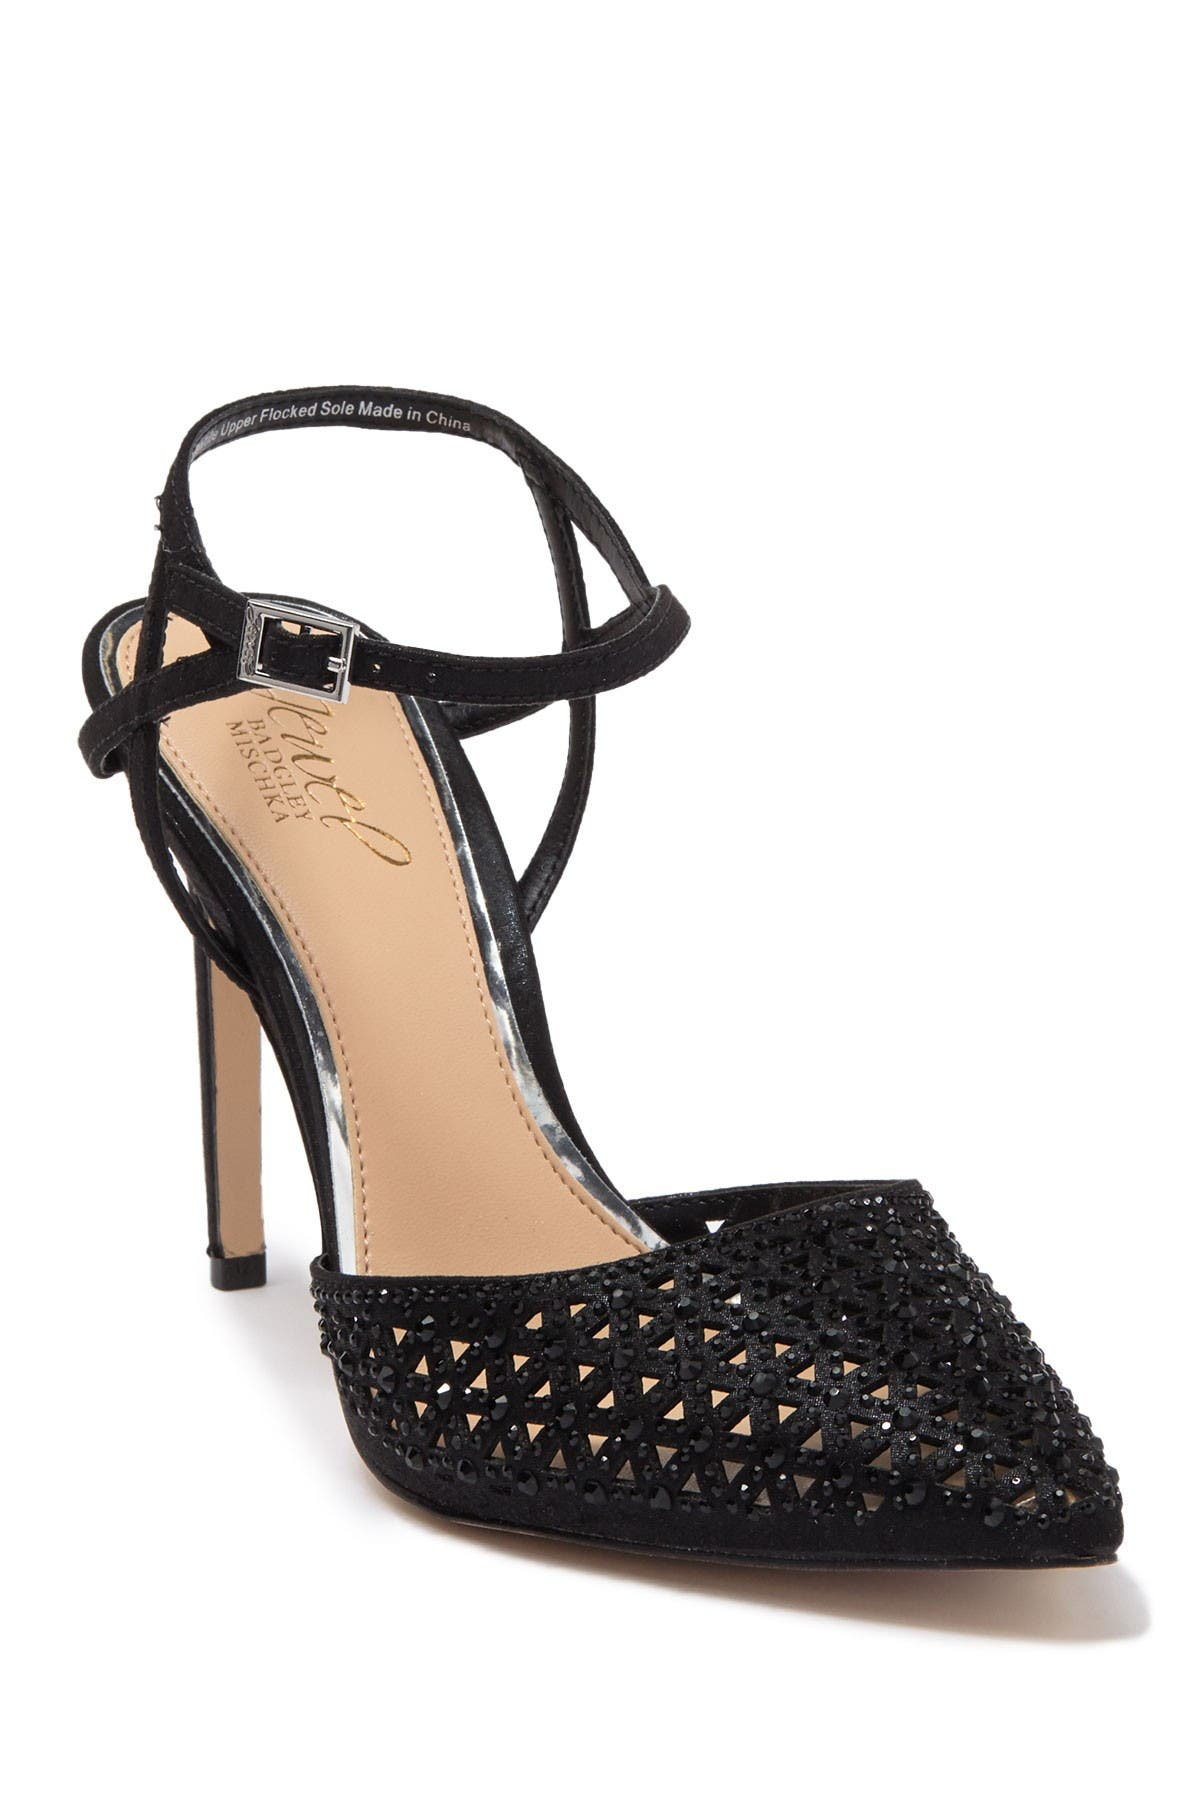 Image of Jewel Badgley Mischka Fatima Ankle Strap Pump